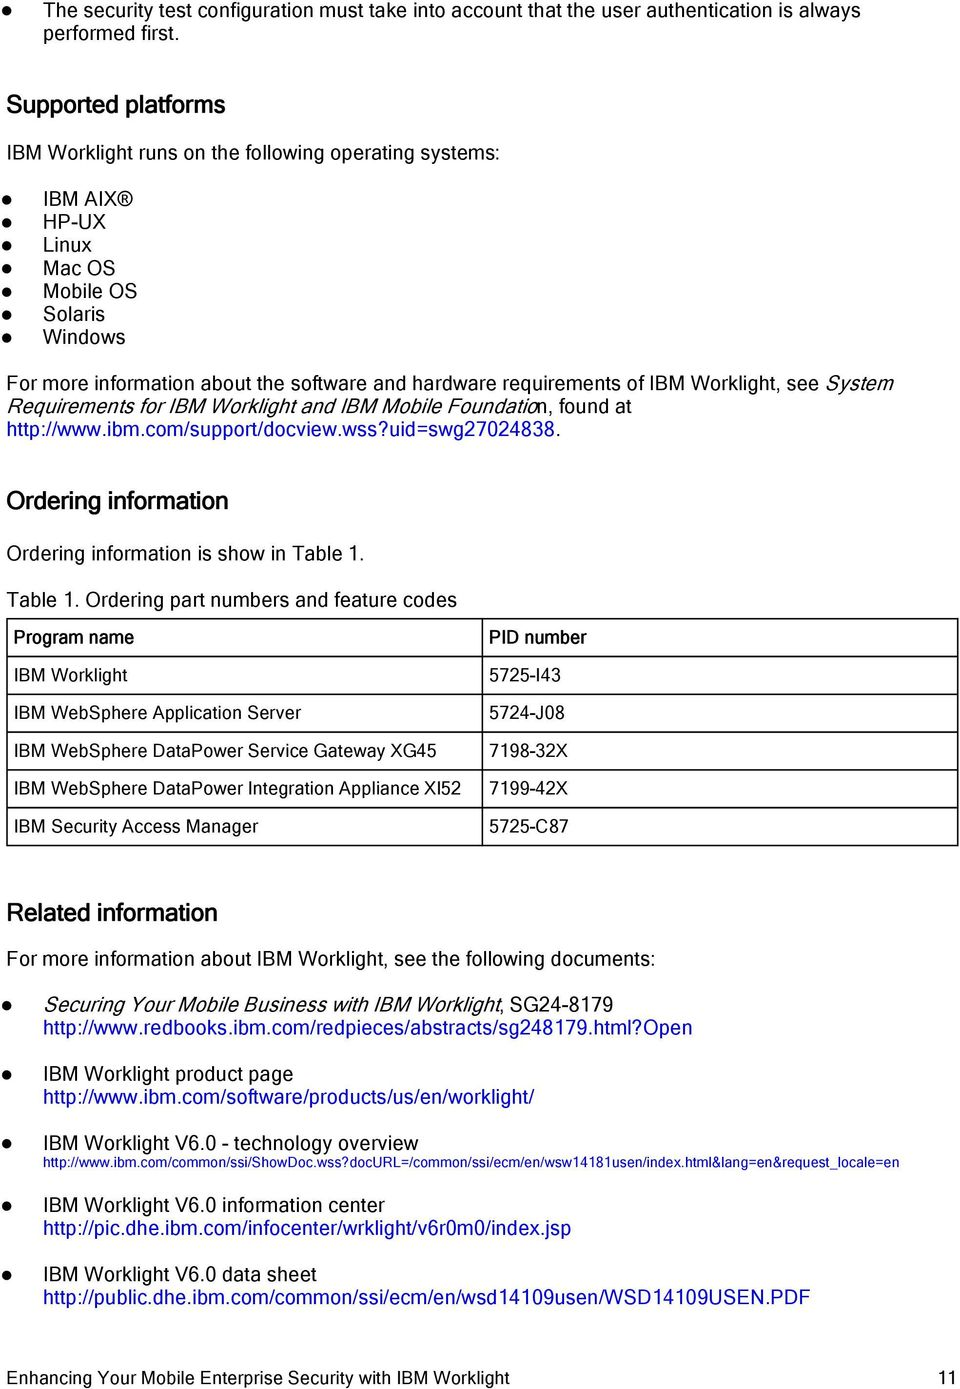 IBM Worklight, see System Requirements for IBM Worklight and IBM Mobile Foundation, found at http://www.ibm.com/support/docview.wss?uid=swg27024838.